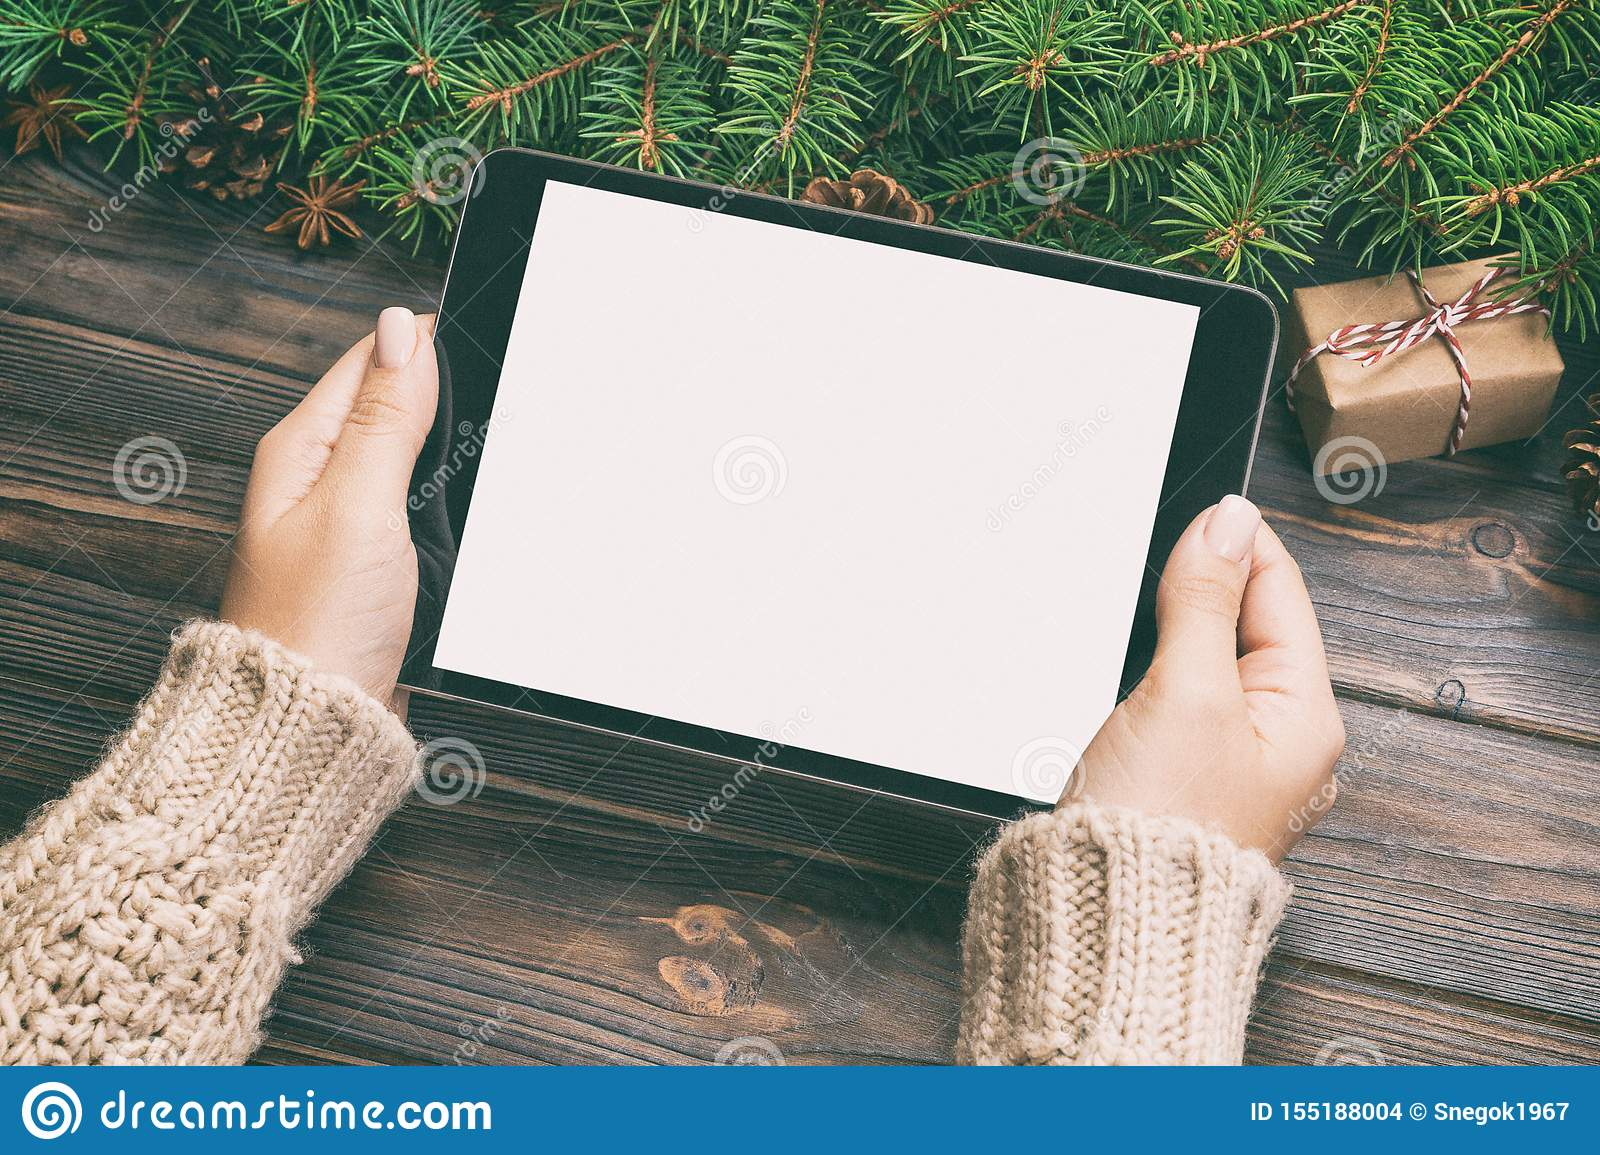 Female hand holding tablet, perspective view. Winter holidays sales background. Christmas online shopping. Toned